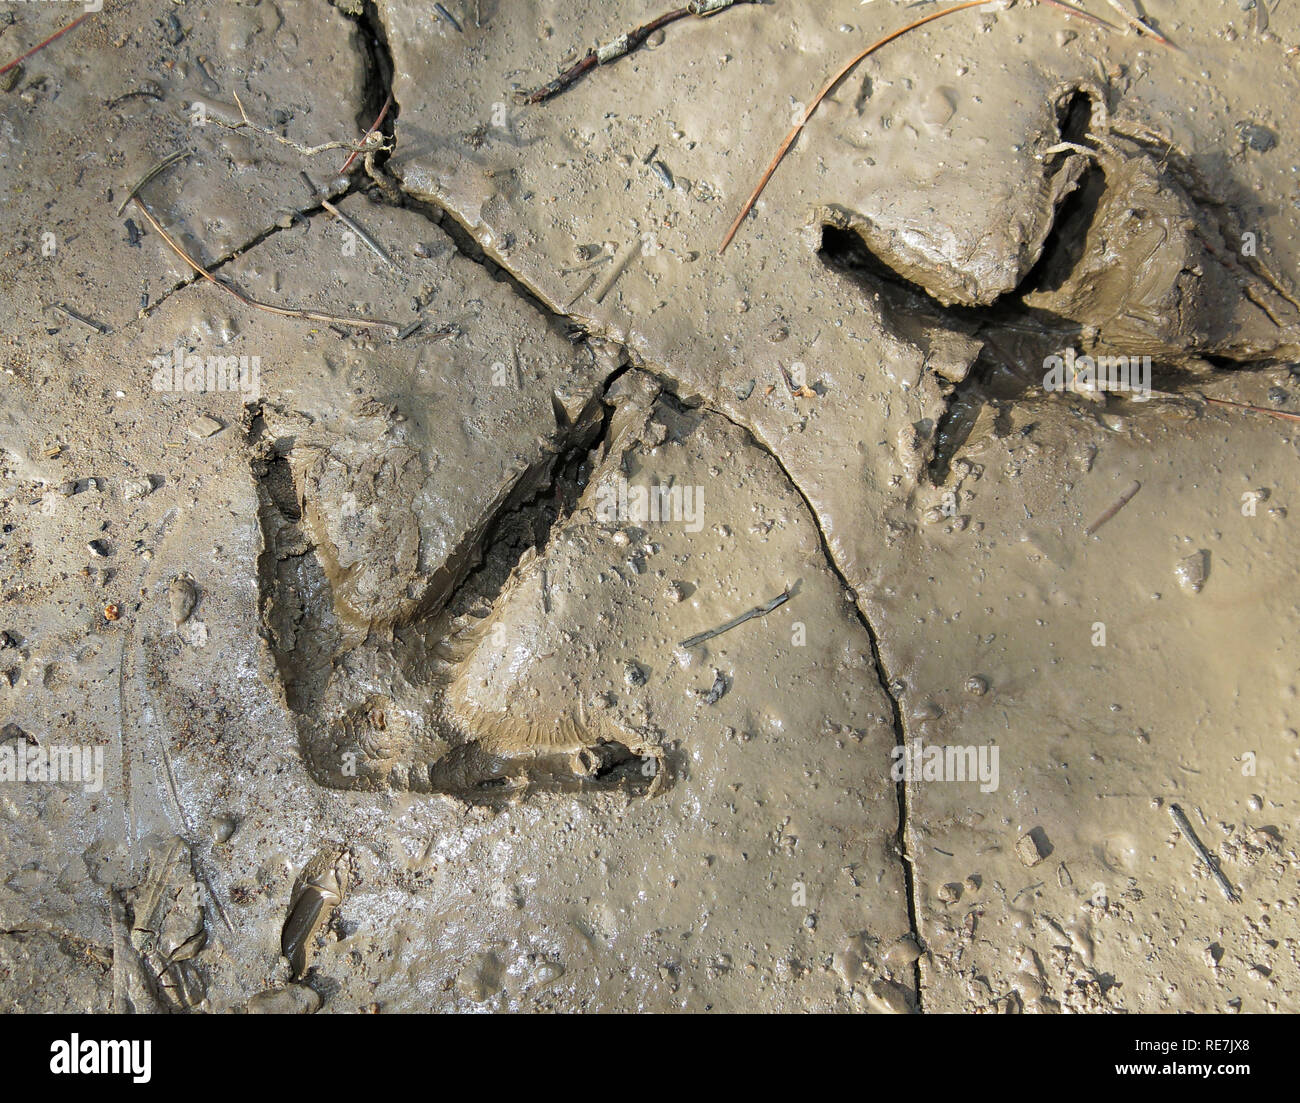 detailed wild turkey tracks in mud - Stock Image